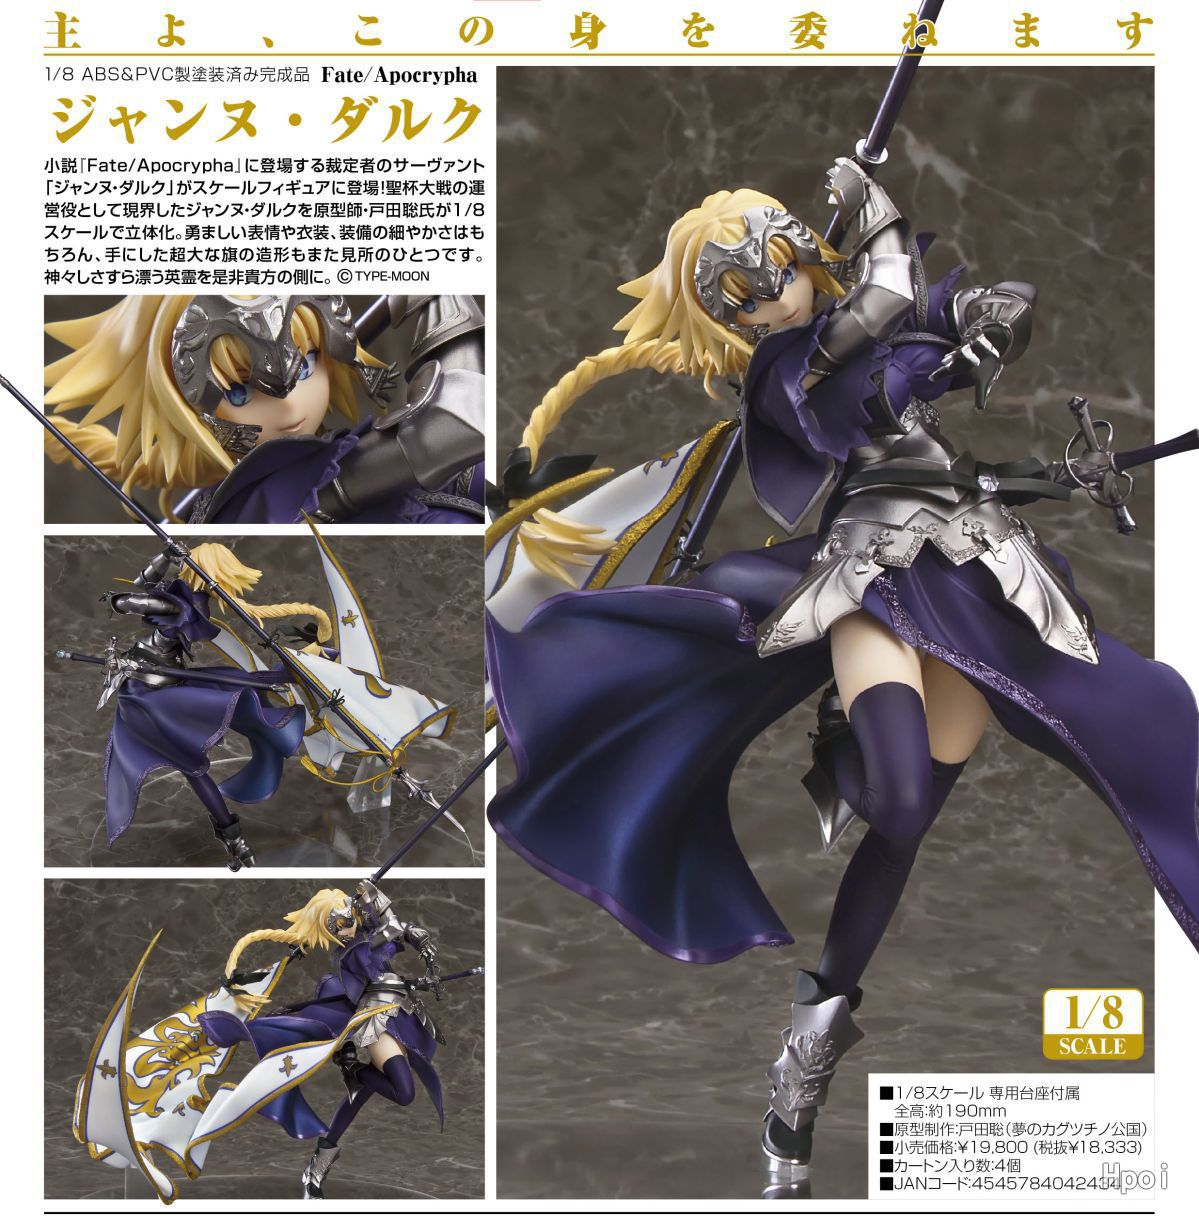 Fate/Apocrypha Jeanne D Arc Action Figure Joan of Arc Flag Model Dolls Decoration Pvc collection Anime Figurine Kids Toys Gifts huong anime figure 20 cmfate stay night fate zero apocrypha joan of arc pvc action figure toy model collectibles